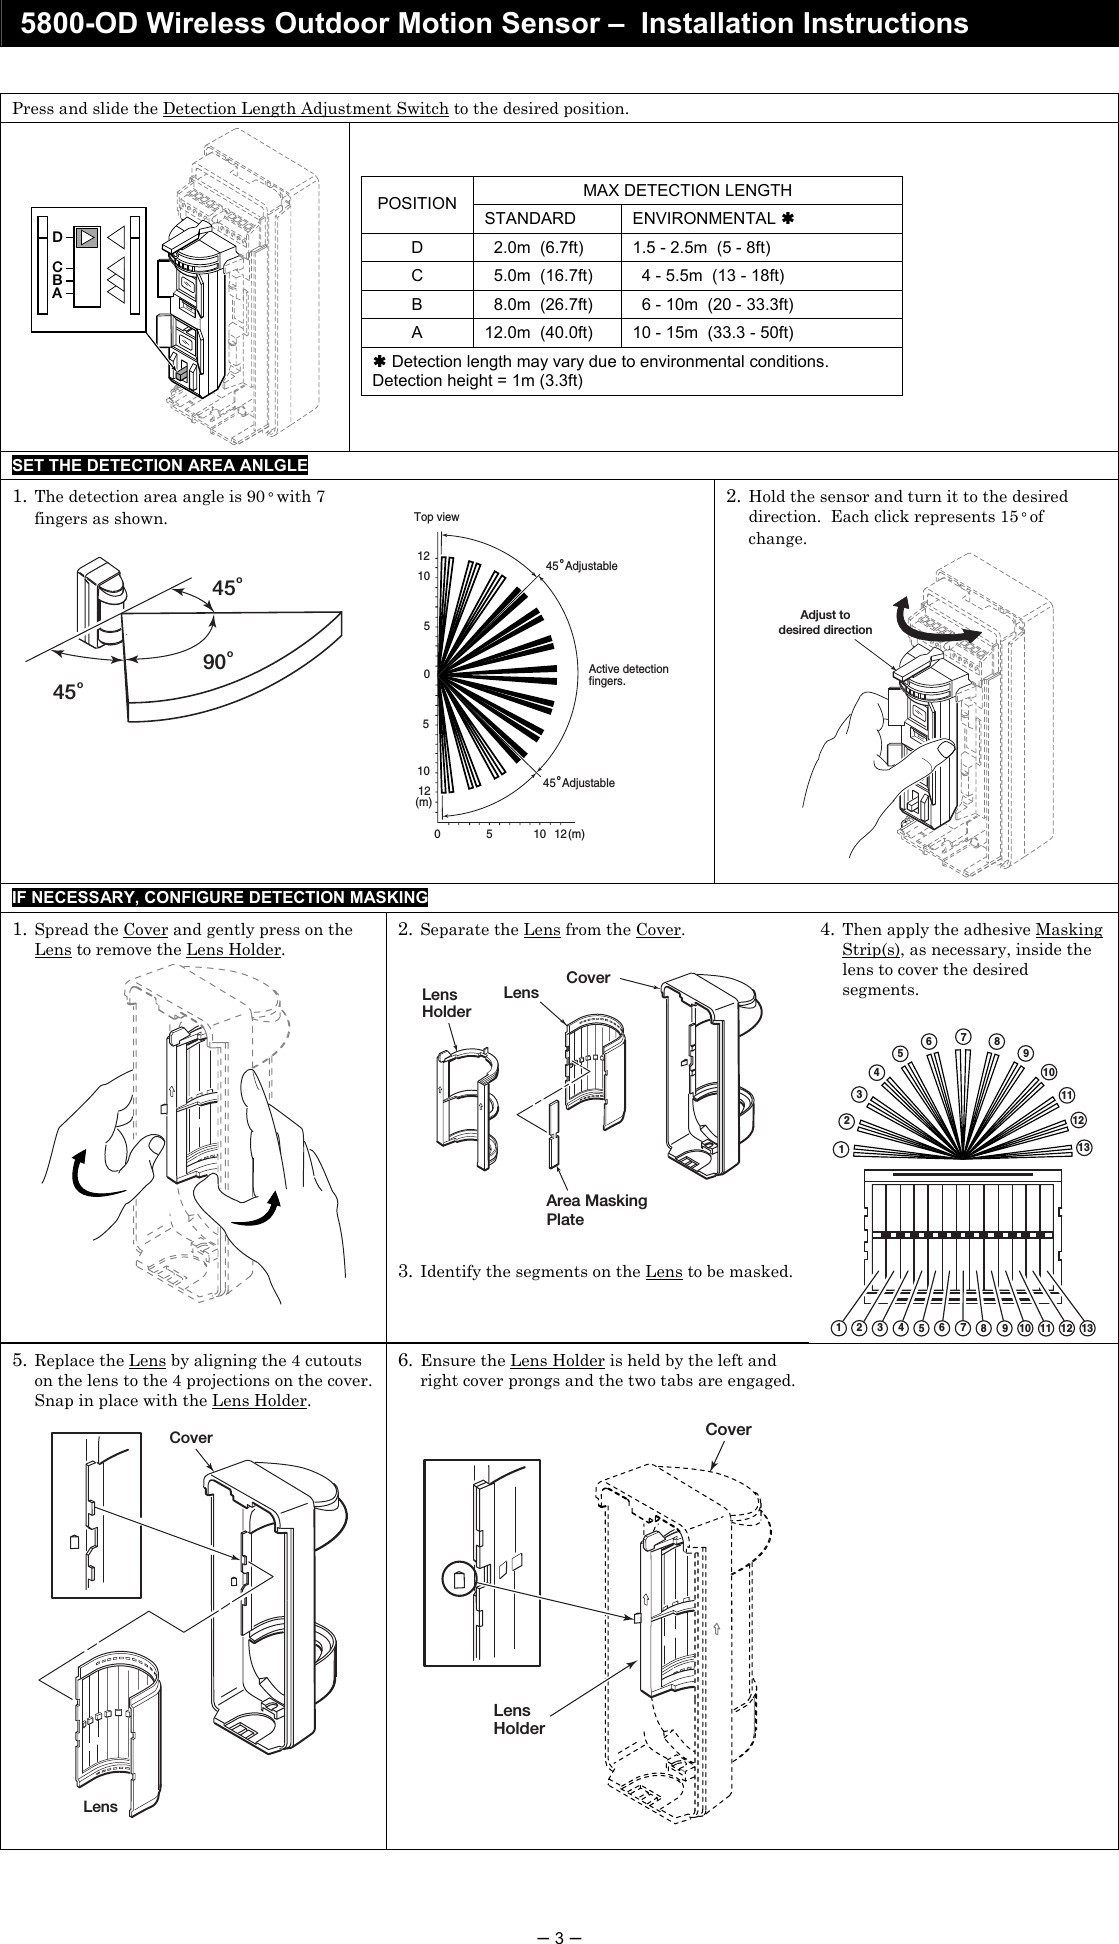 Wiring Diagram for Security Light with Pir Best Wiring Diagram for Alarm Pir New 8dl5800pir Od